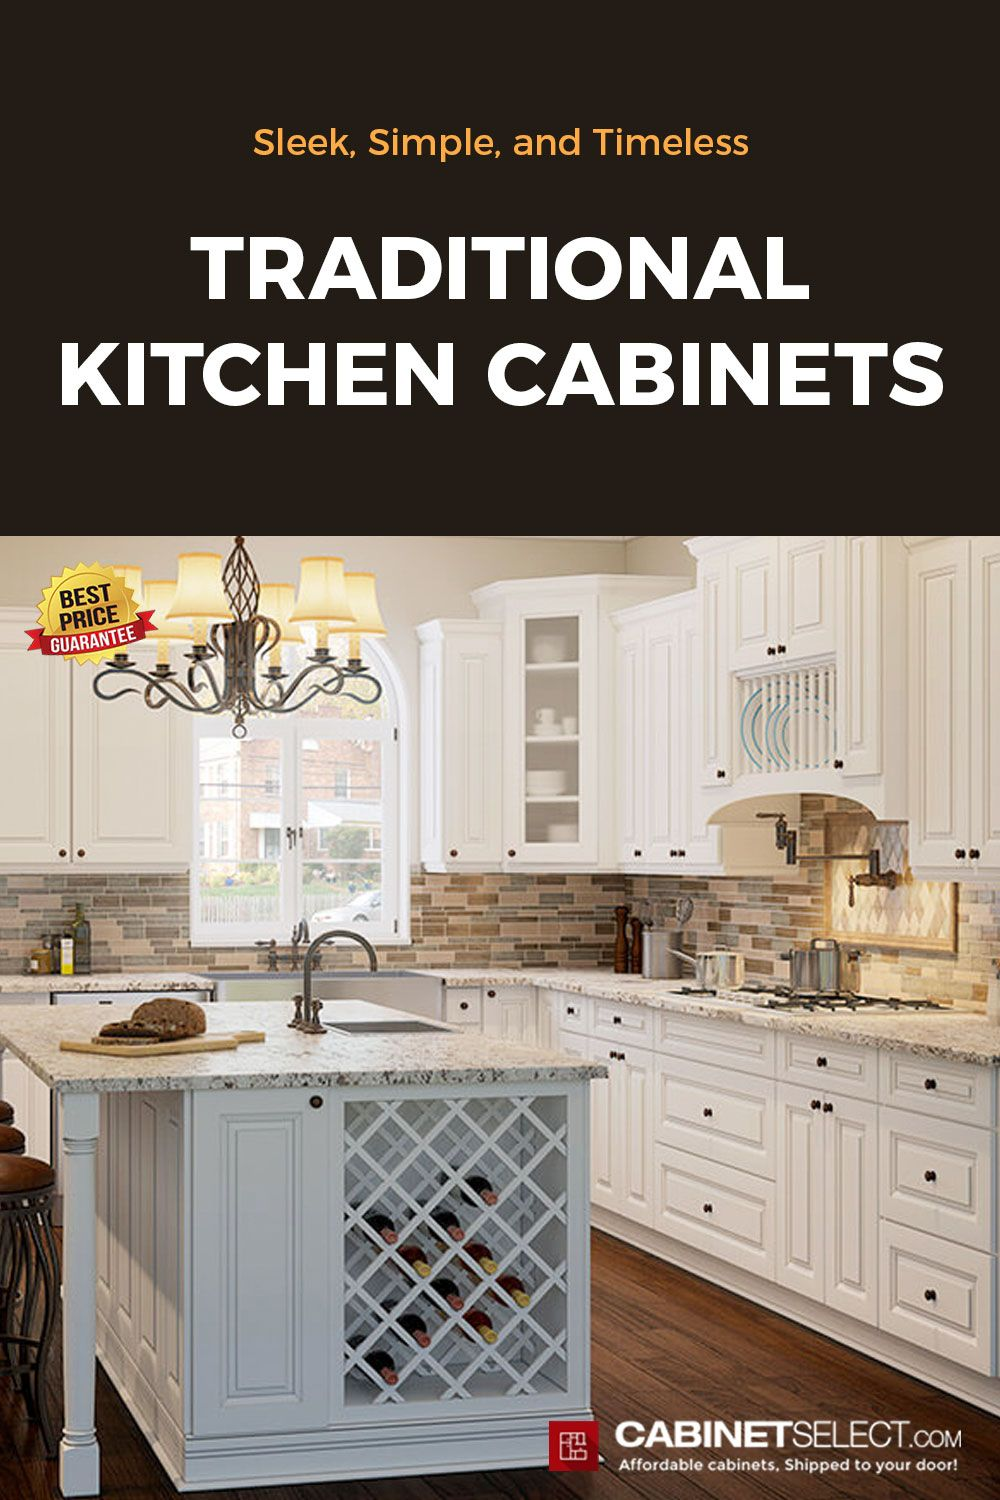 Traditional Kitchen Cabinets Cabinetselect Com Cost Of Kitchen Cabinets Kitchen Cabinets On A Budget Traditional Kitchen Cabinets